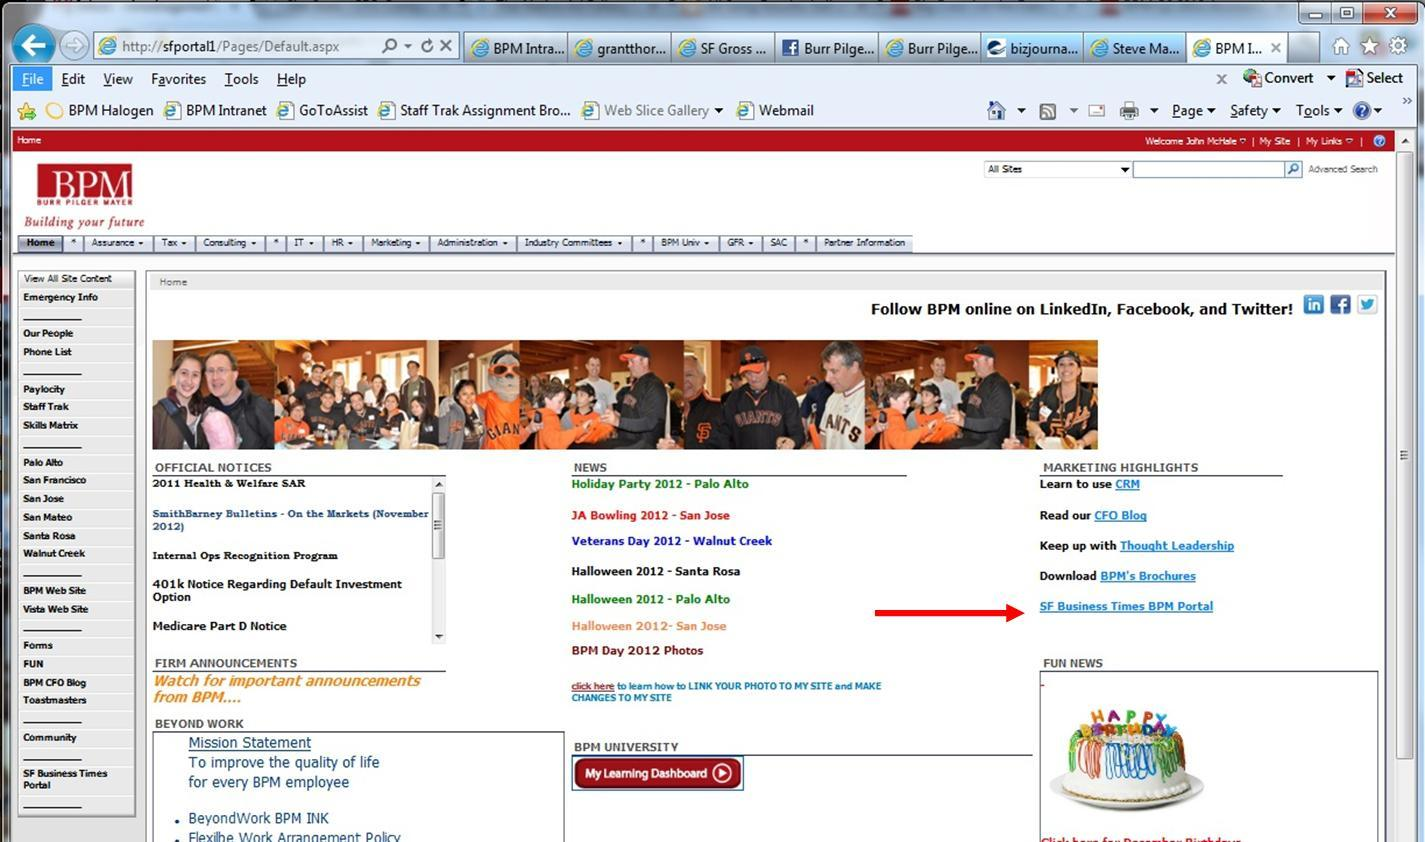 Example of a portal web page